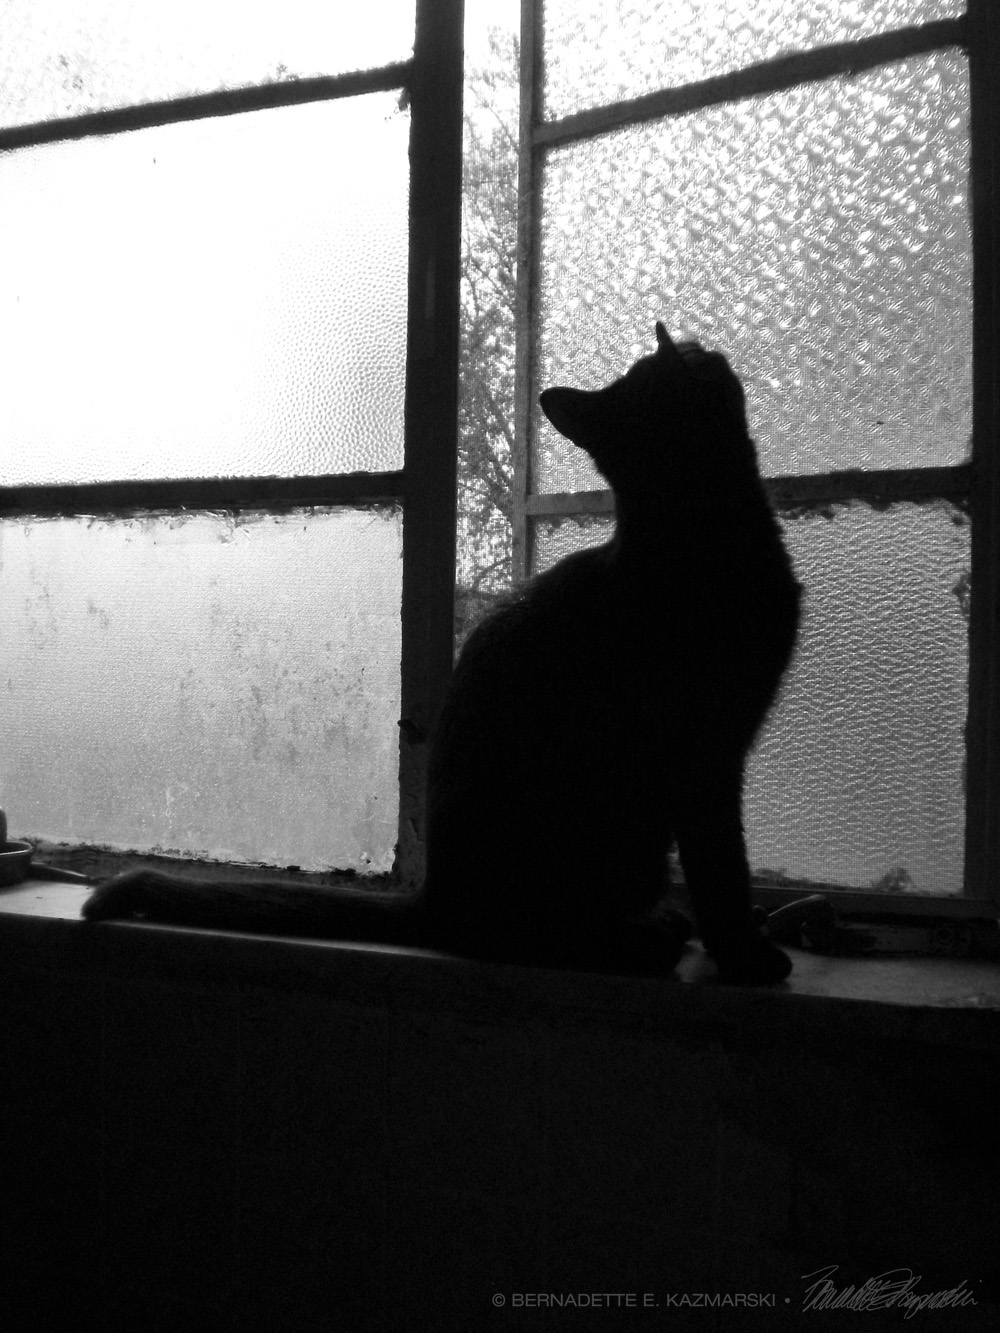 black cat silhouette on windowsill